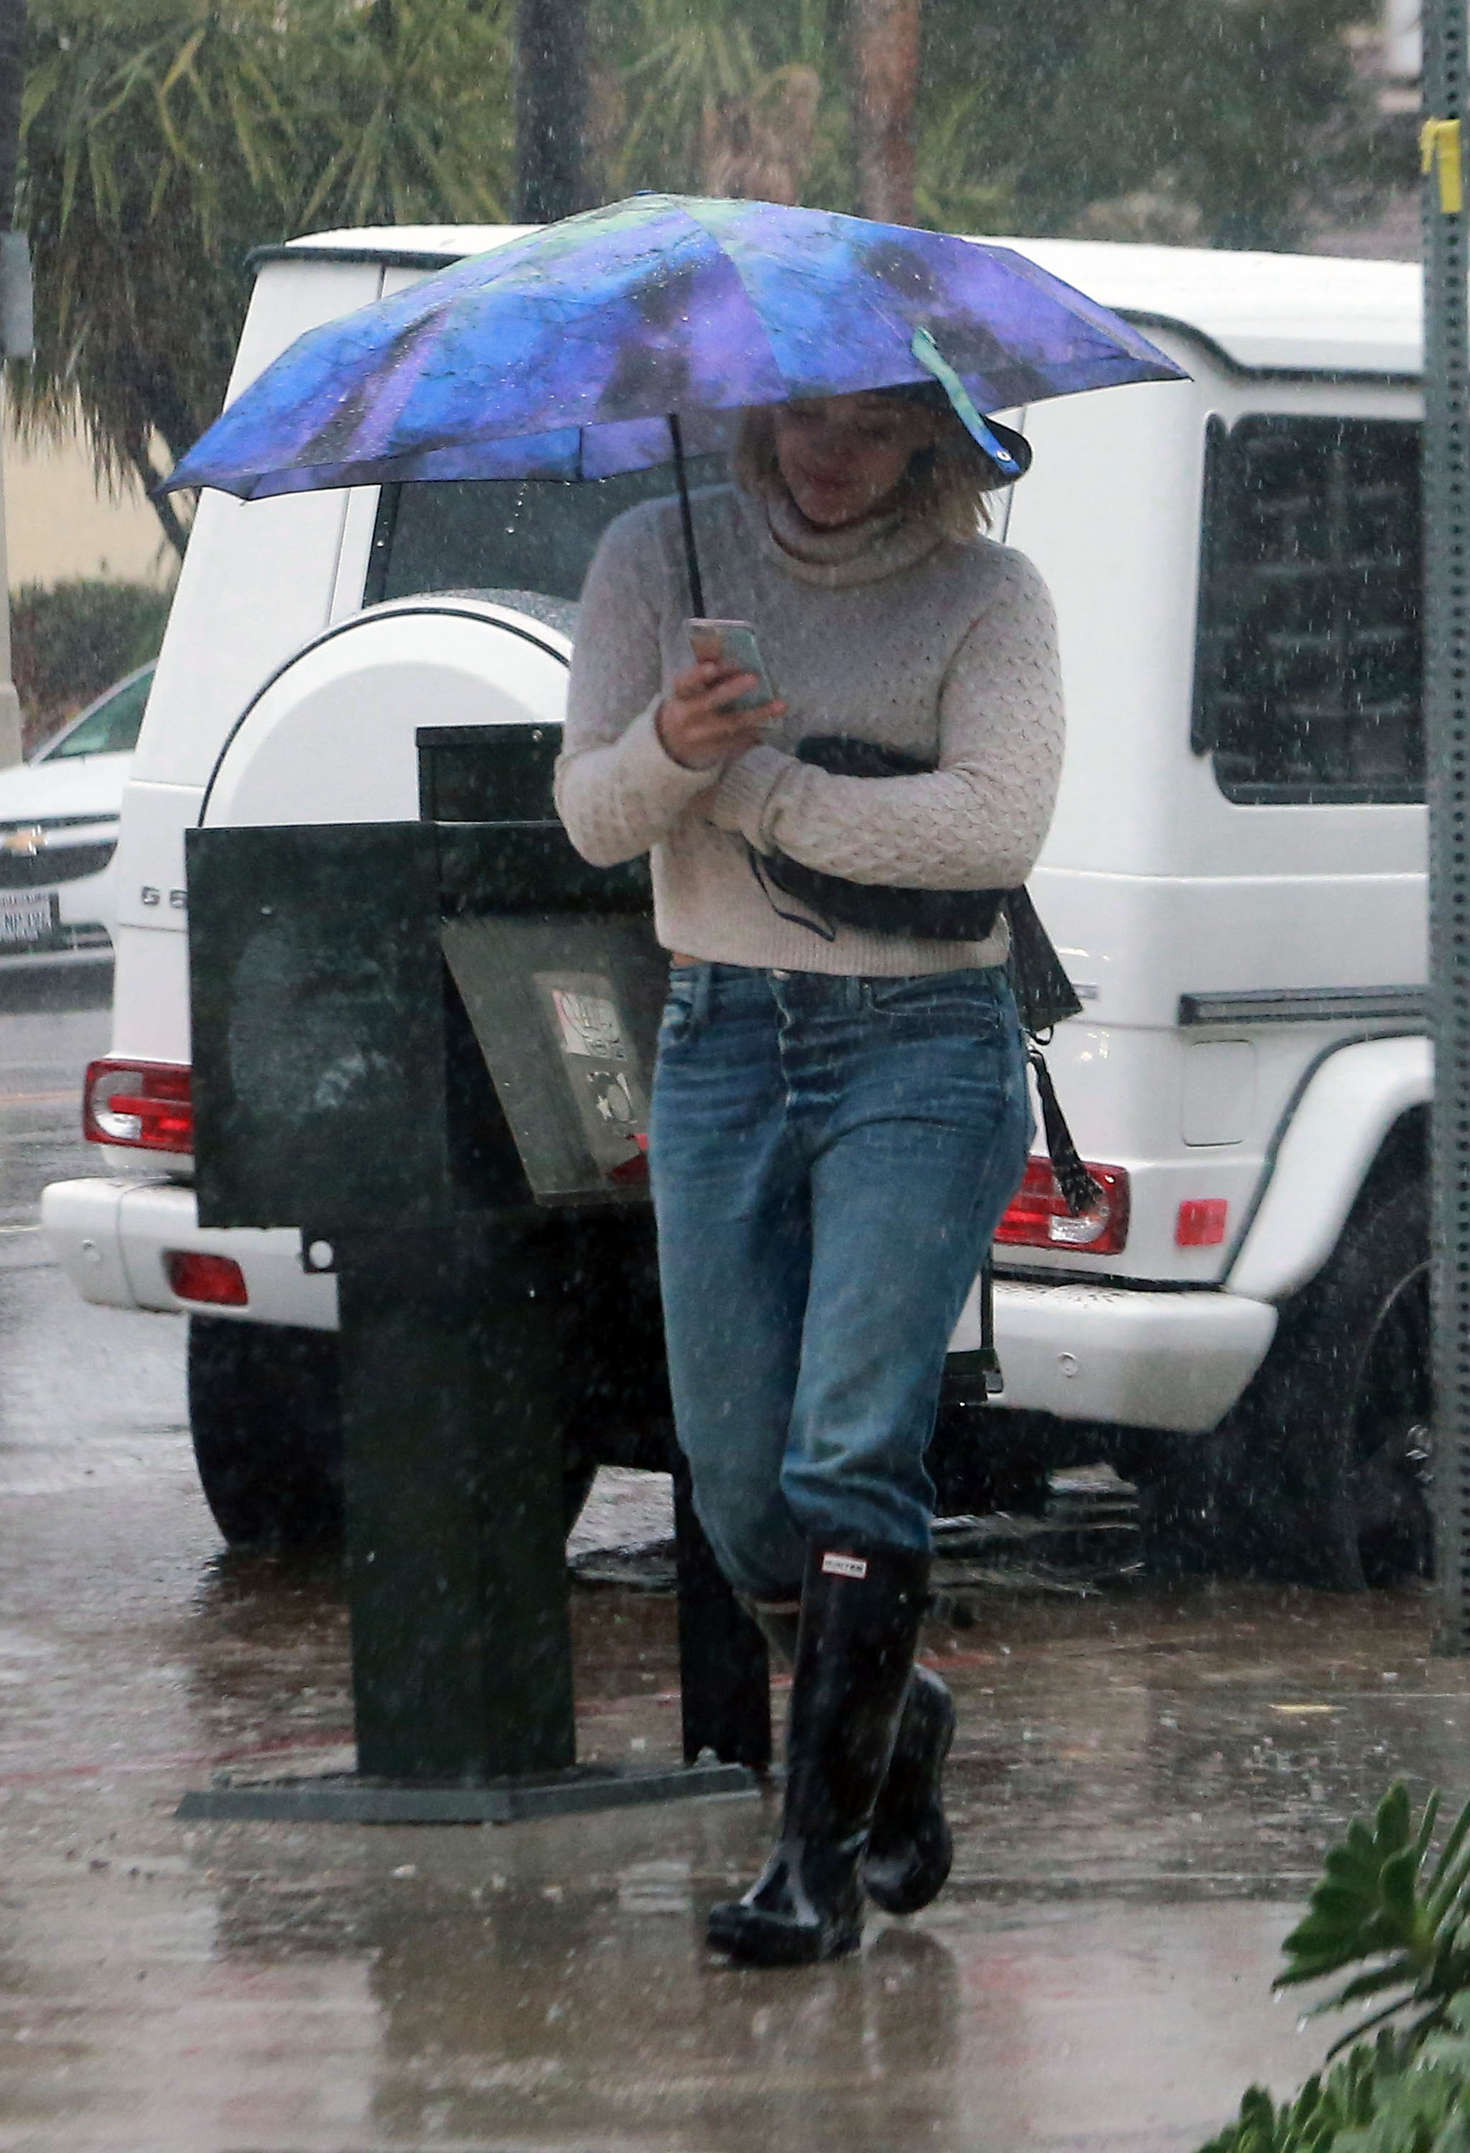 Hilary Duff 2016 : Hilary Duff in Jeans out on a rainy day -17